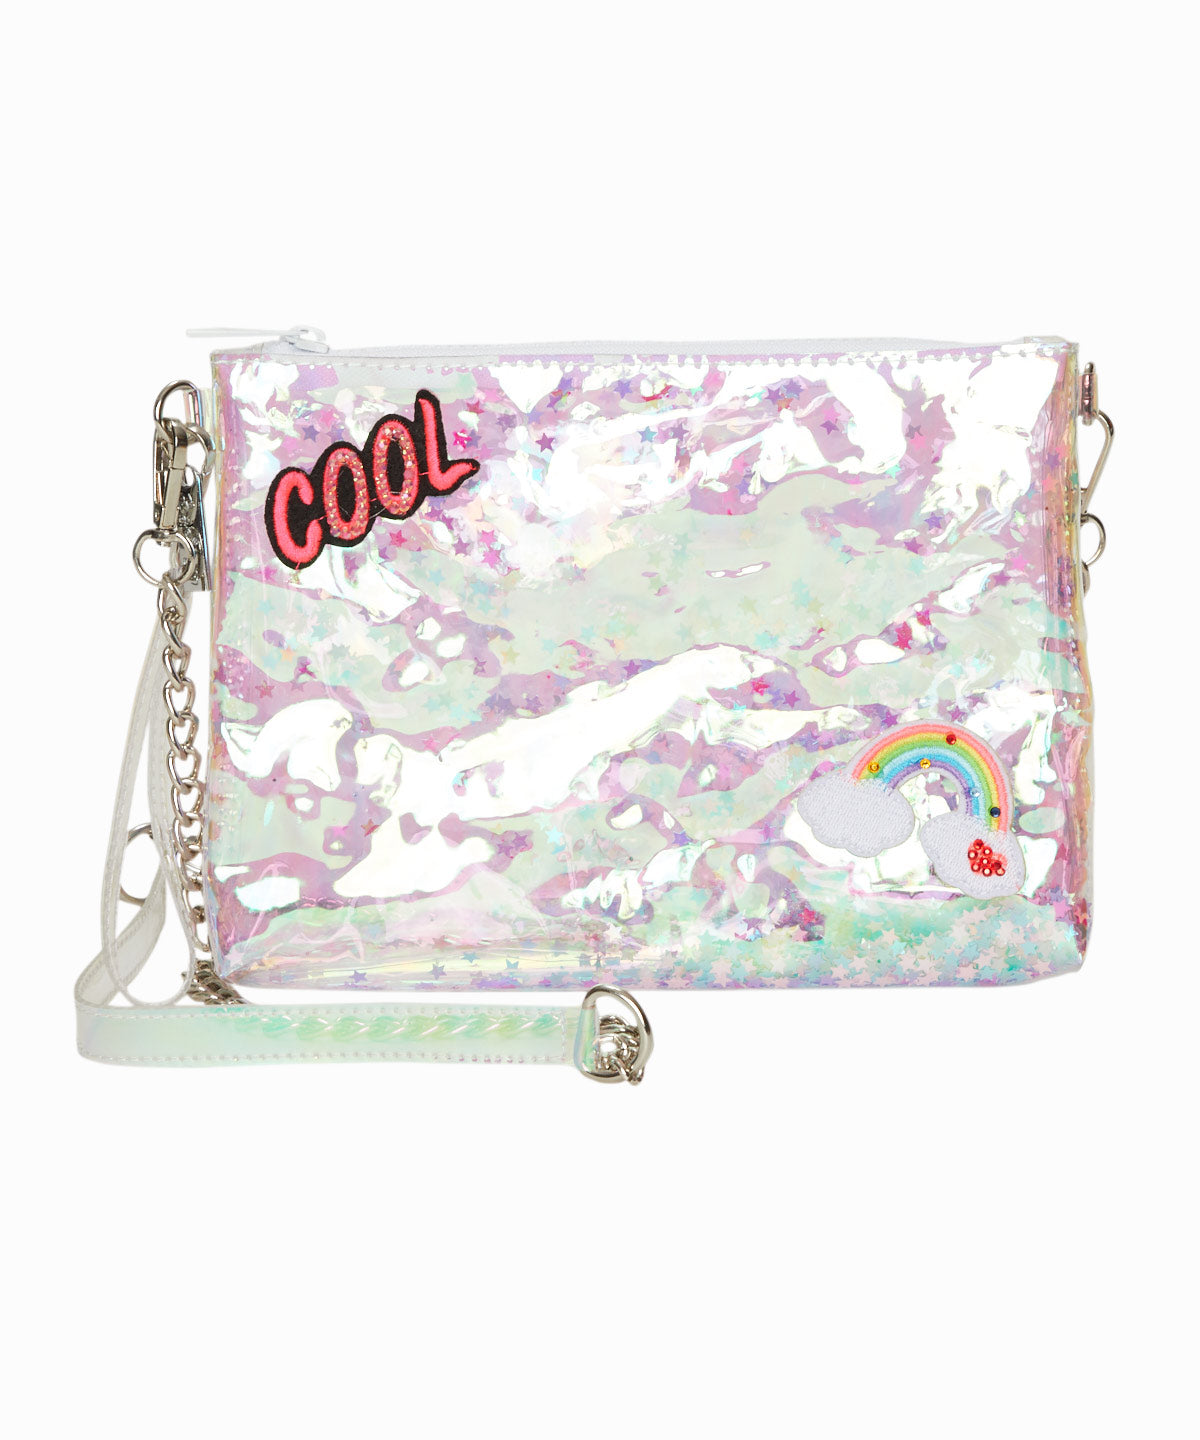 Exclusive Confetti Clear Large Shoulder Bag